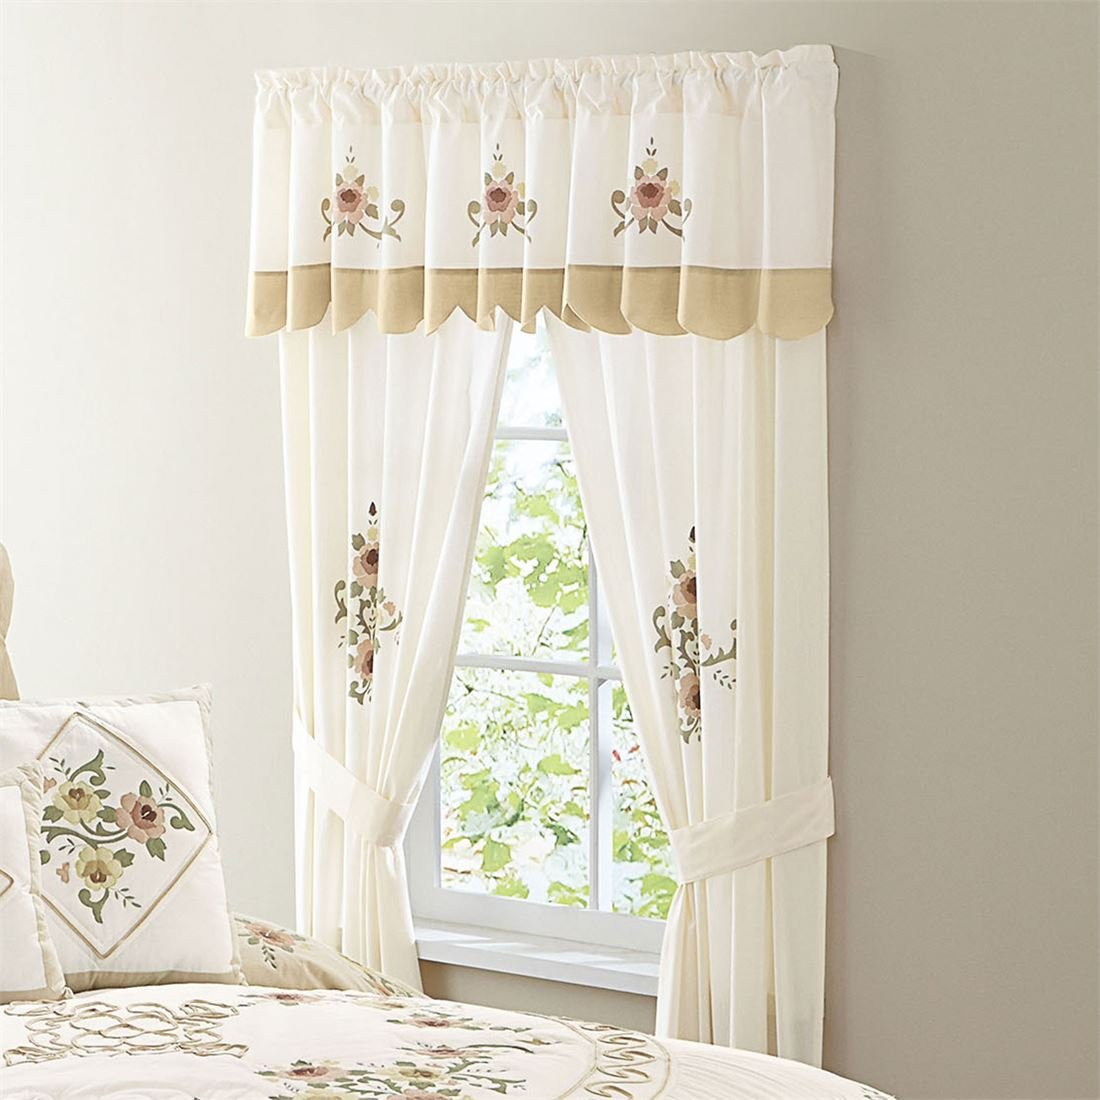 BrylaneHome Ava Embroidered Panel Set with Tiebacks (Taupe,0)